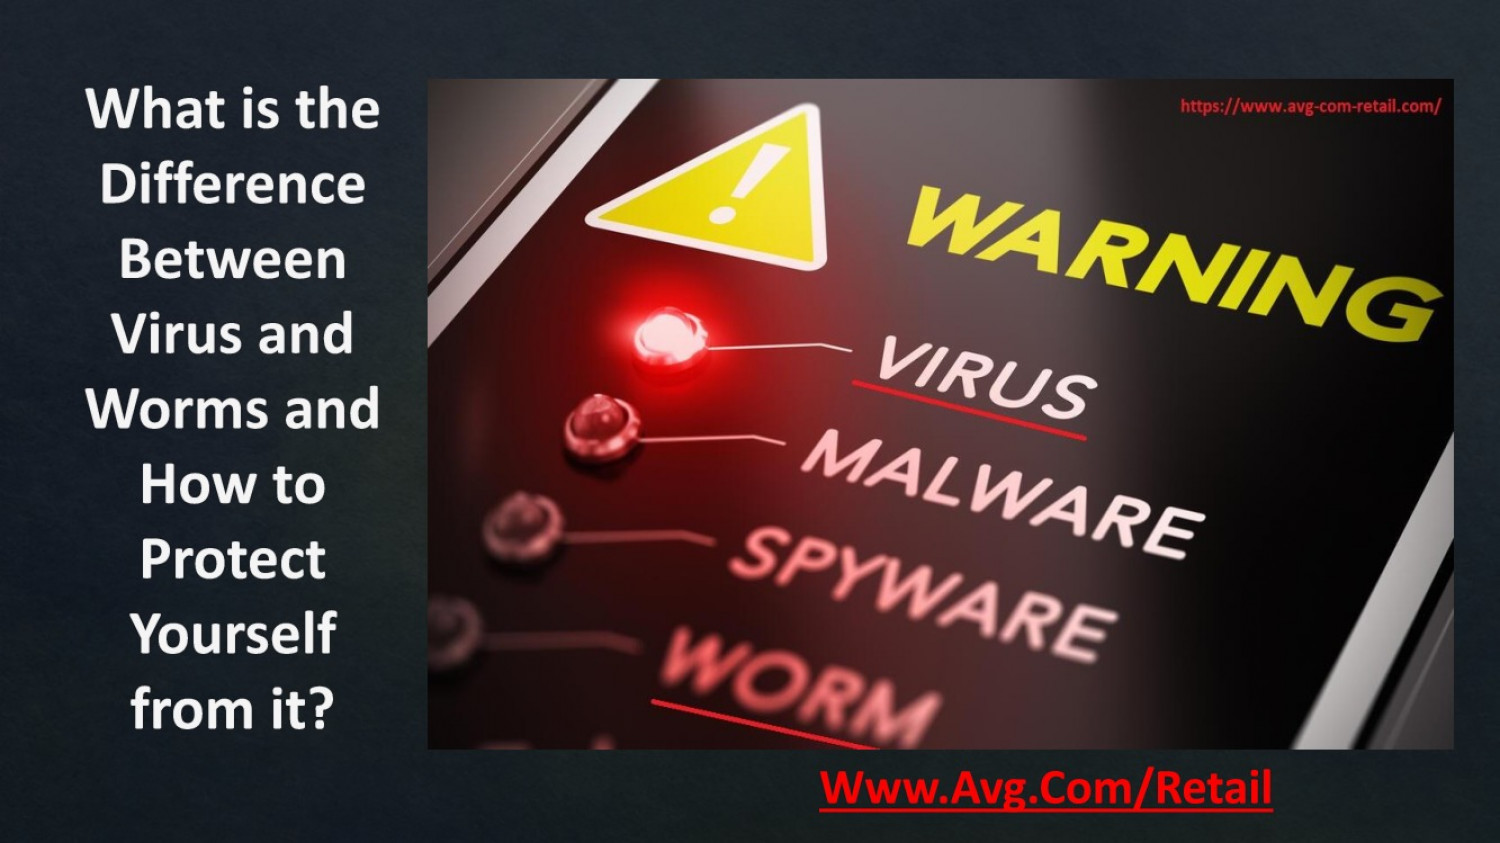 What is the Difference Between Virus and Worms and How to Protect Yourself from it? Infographic